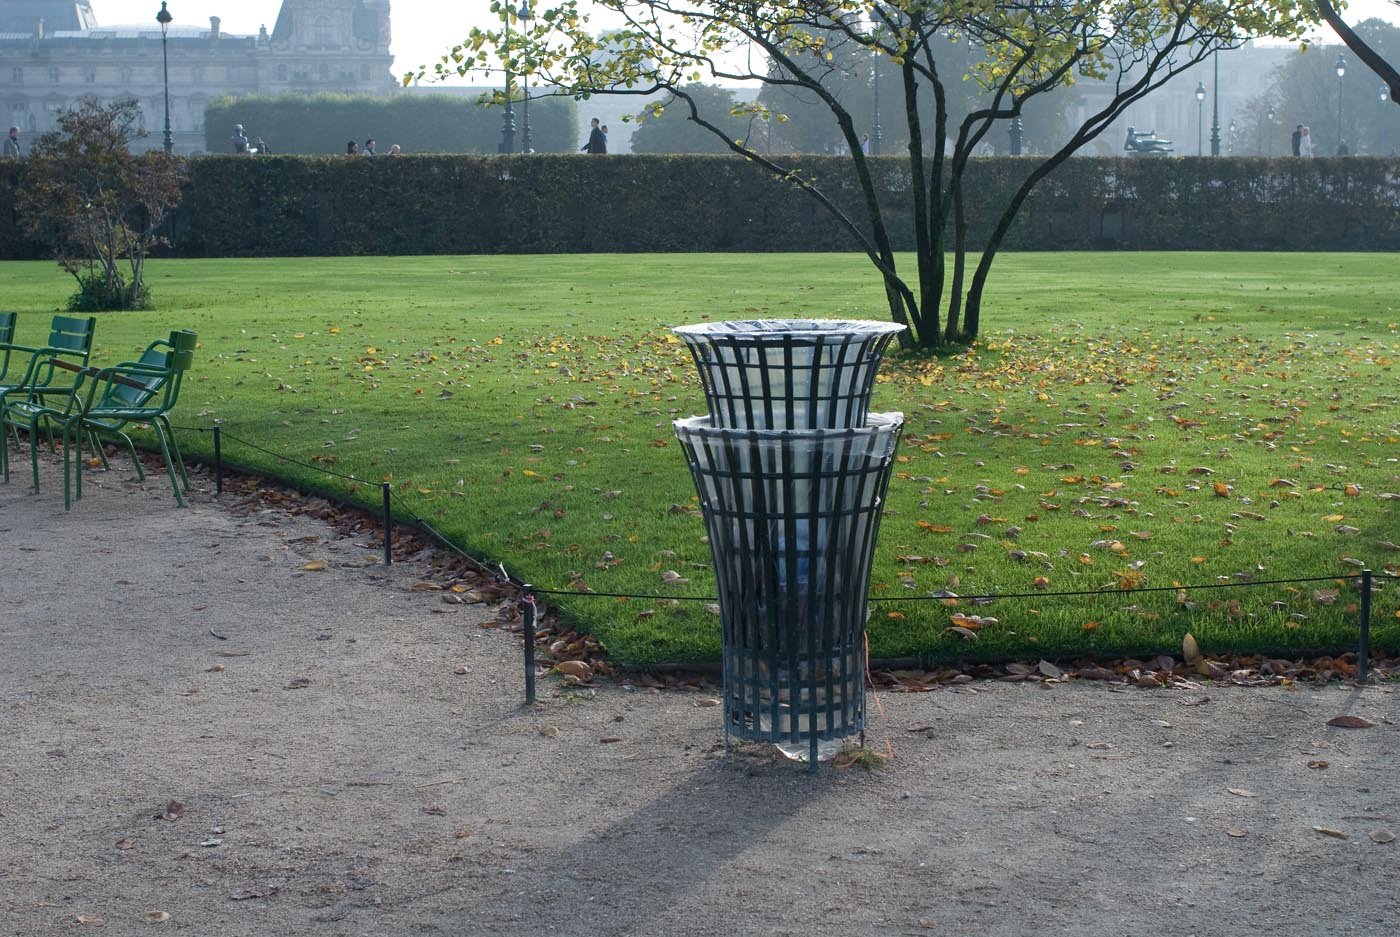 <i>Deux mêmes choses ne peuvent être pareilles</i>, 2012, poubelle mise au rebut <br><i>No two things can be the same</i>, 2012, disposed bin 'Hors Les Murs', Jardin des Tuileries, FIAC, Paris